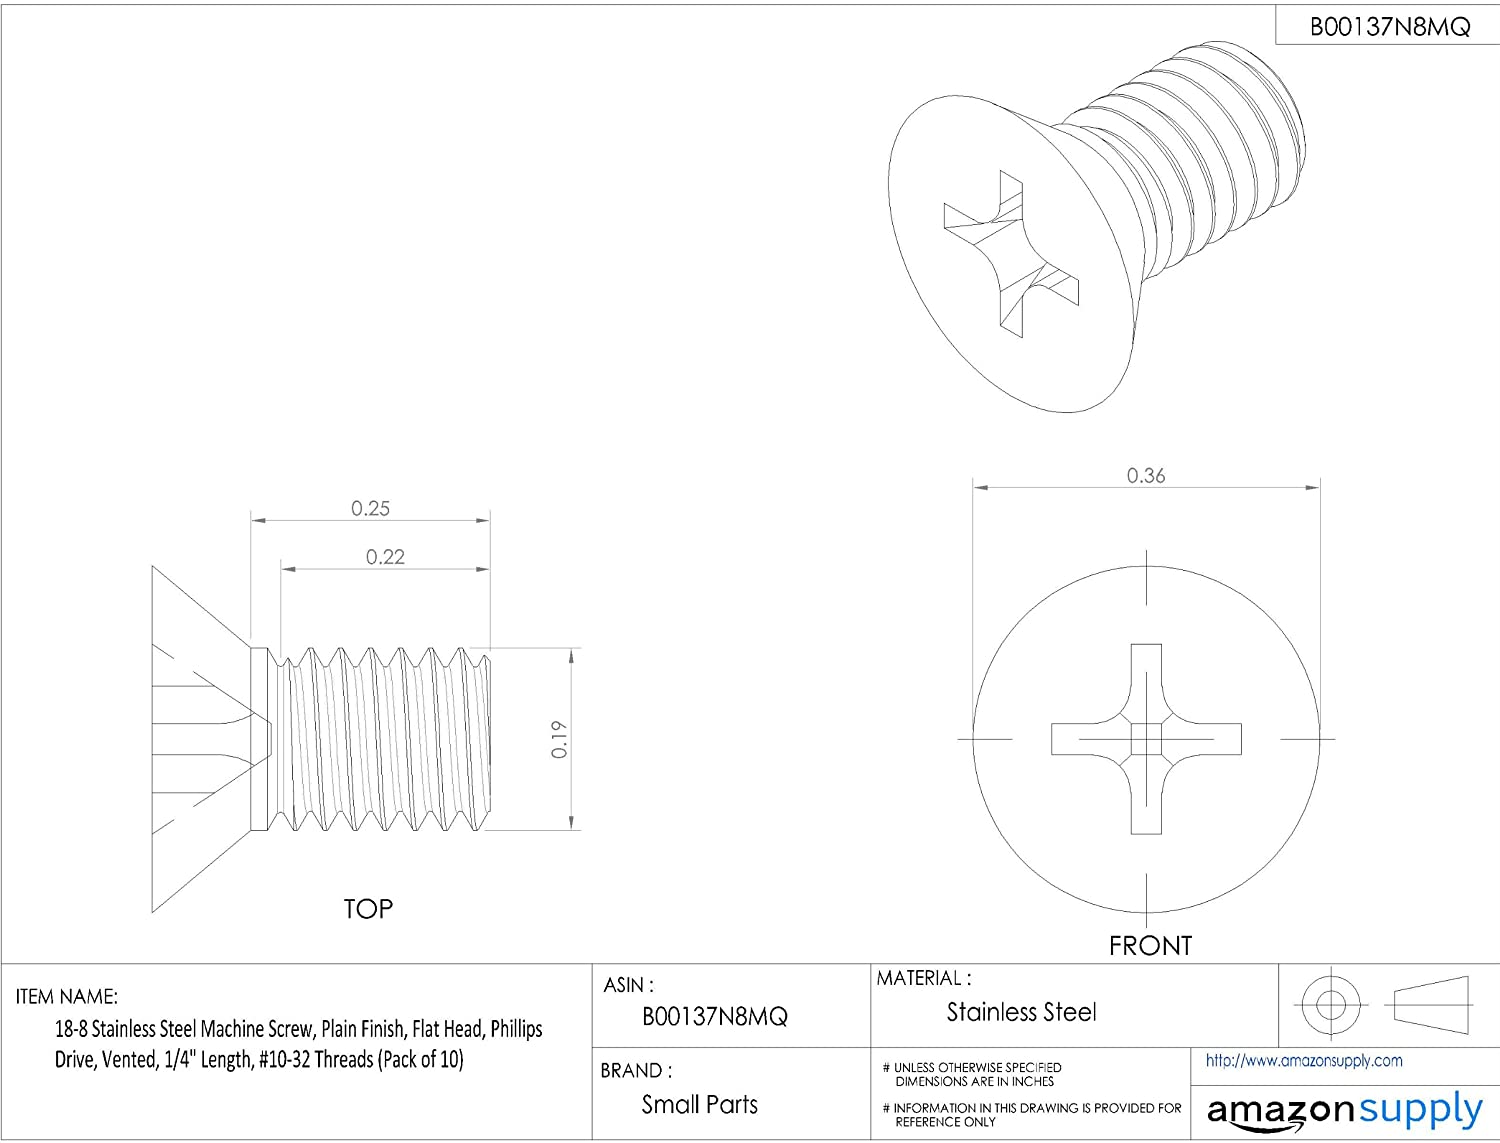 1//4 Length Flat Head Plain Finish Vented Pack of 10 Phillips Drive 18-8 Stainless Steel Machine Screw #6-32 Threads